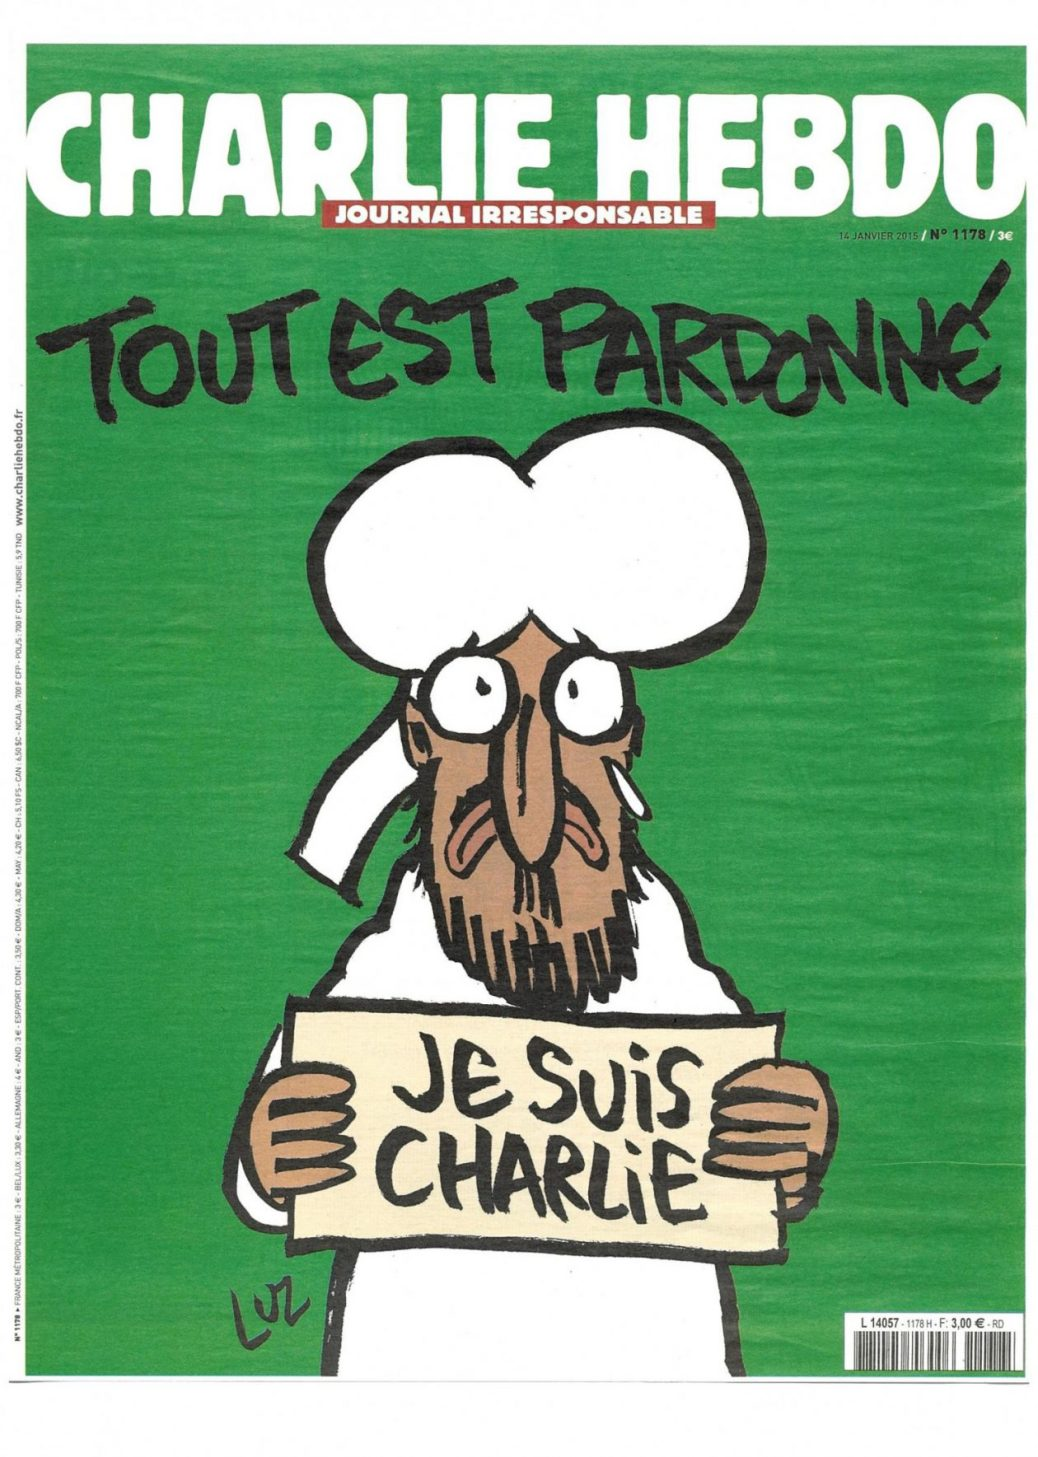 cropped-cropped-charlie-hebdo-1178-page-001.jpg